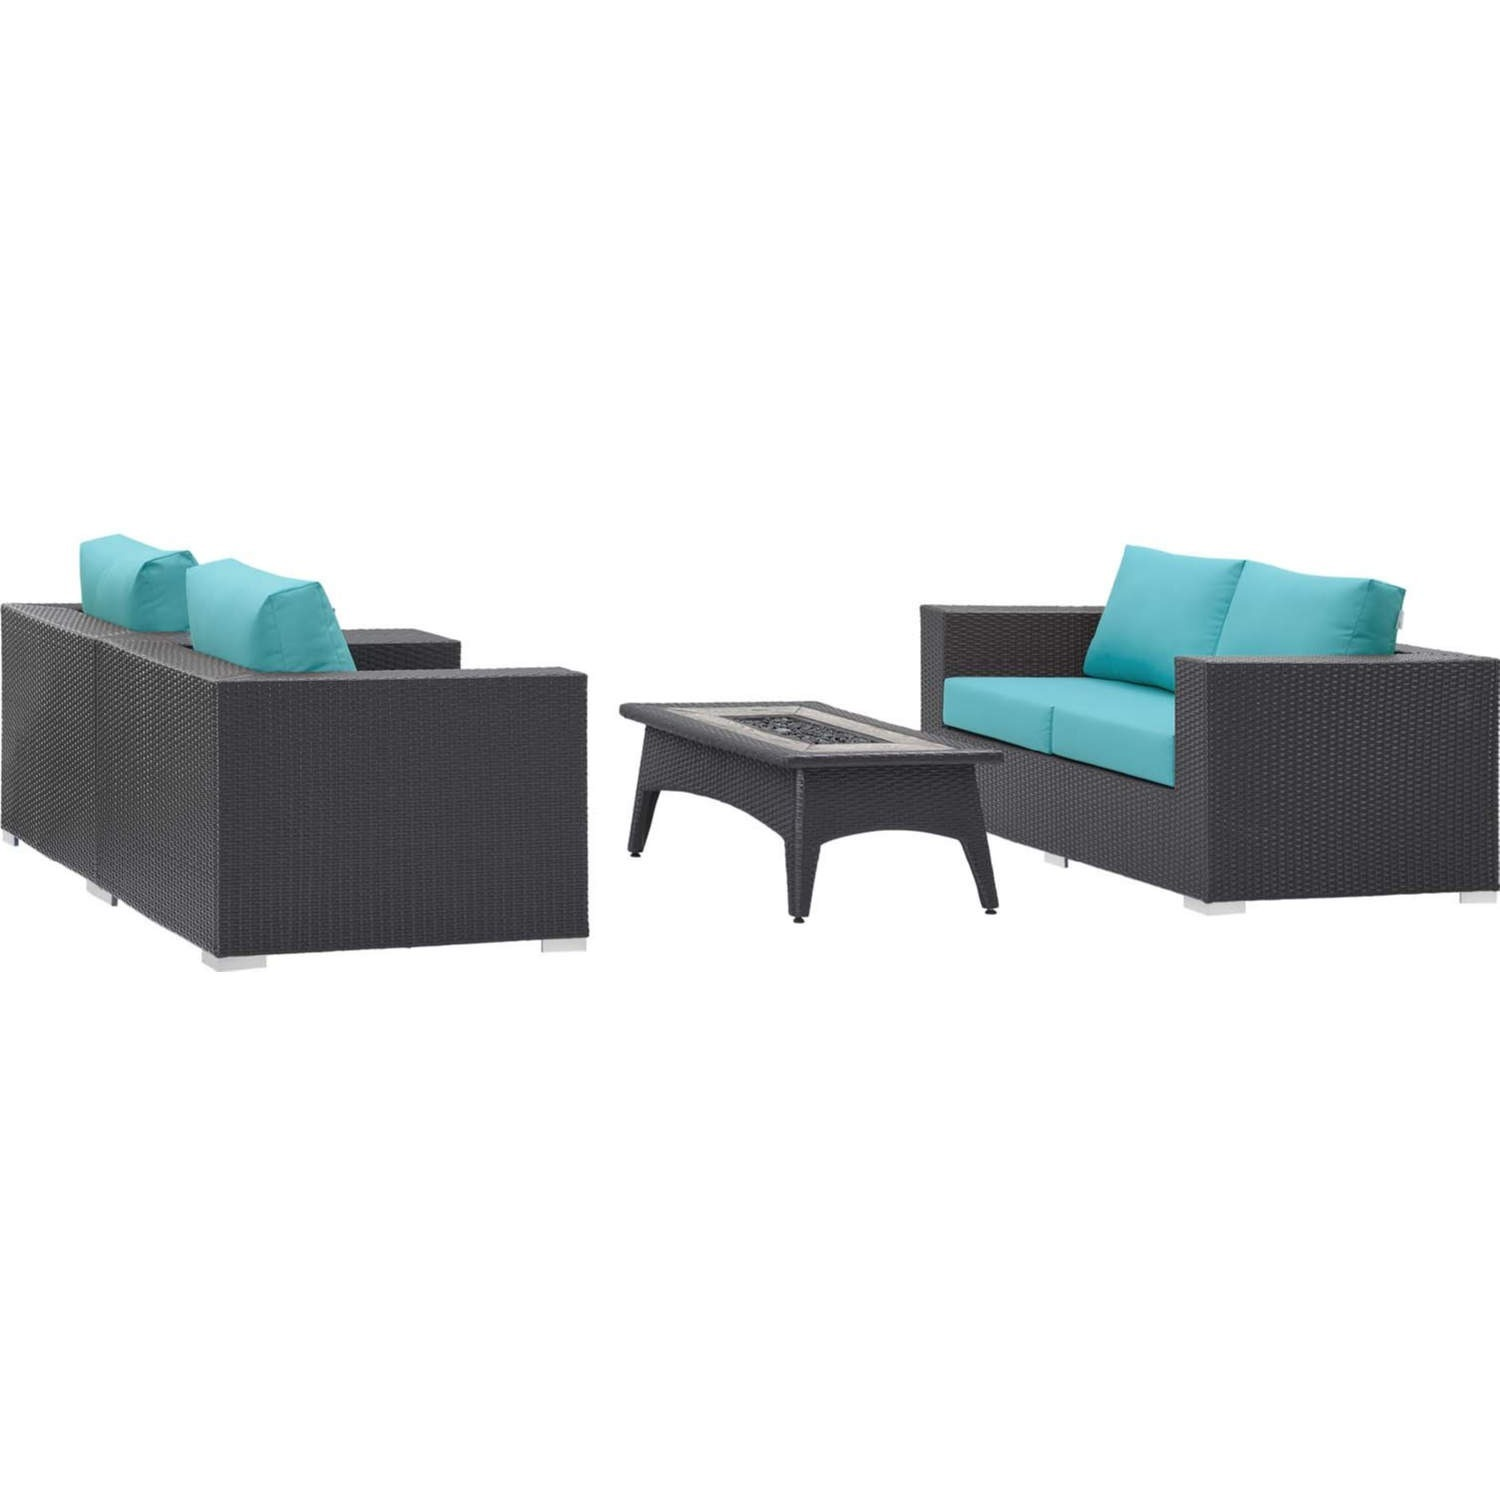 4-Piece Outdoor Sectional In Turquoise W/ Fire Pit - image-1